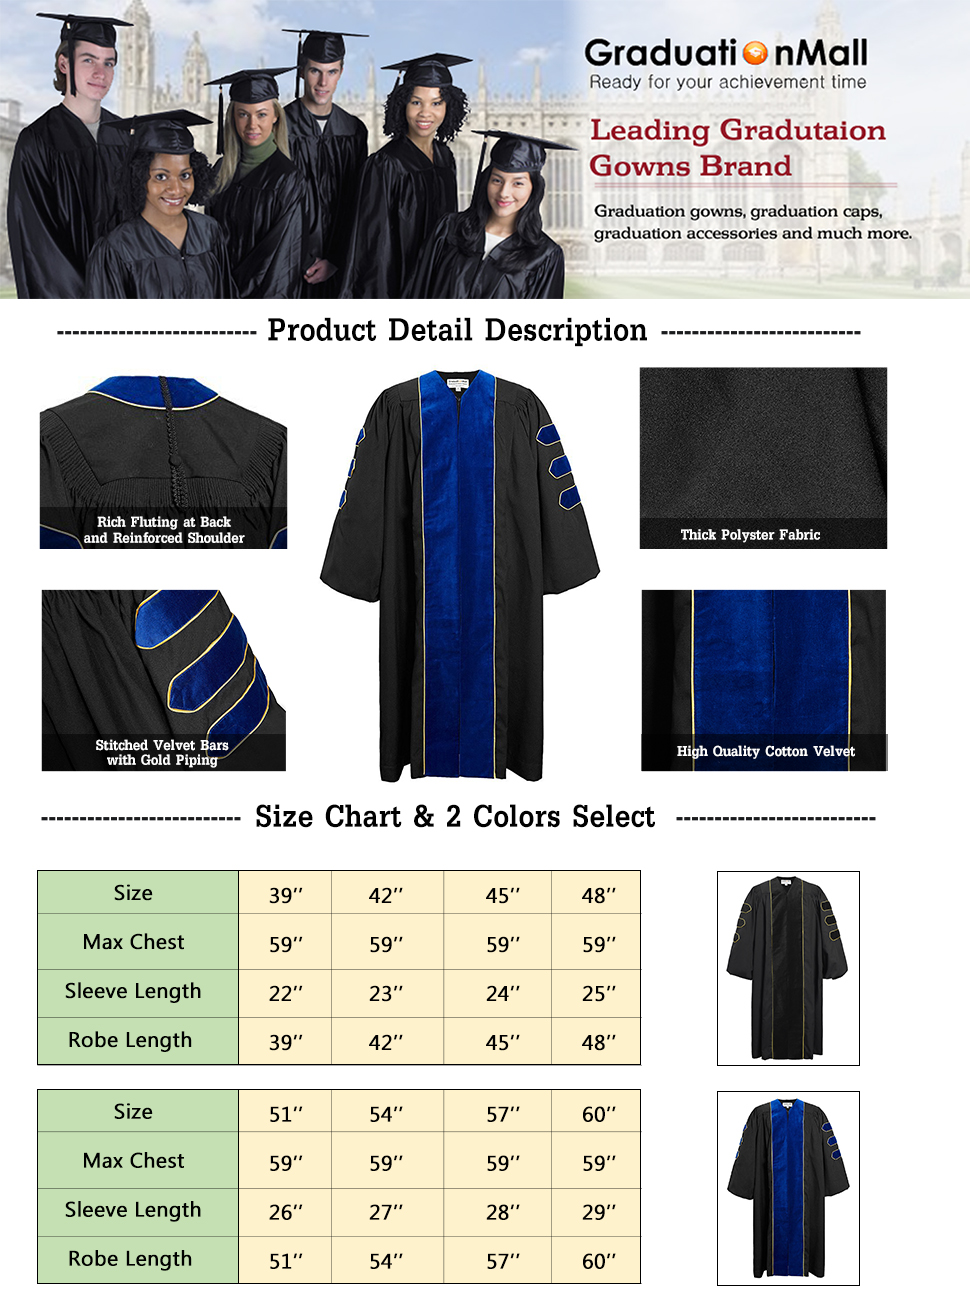 Amazon.com: GraduationMall Deluxe Doctoral Graduation Gown For ...